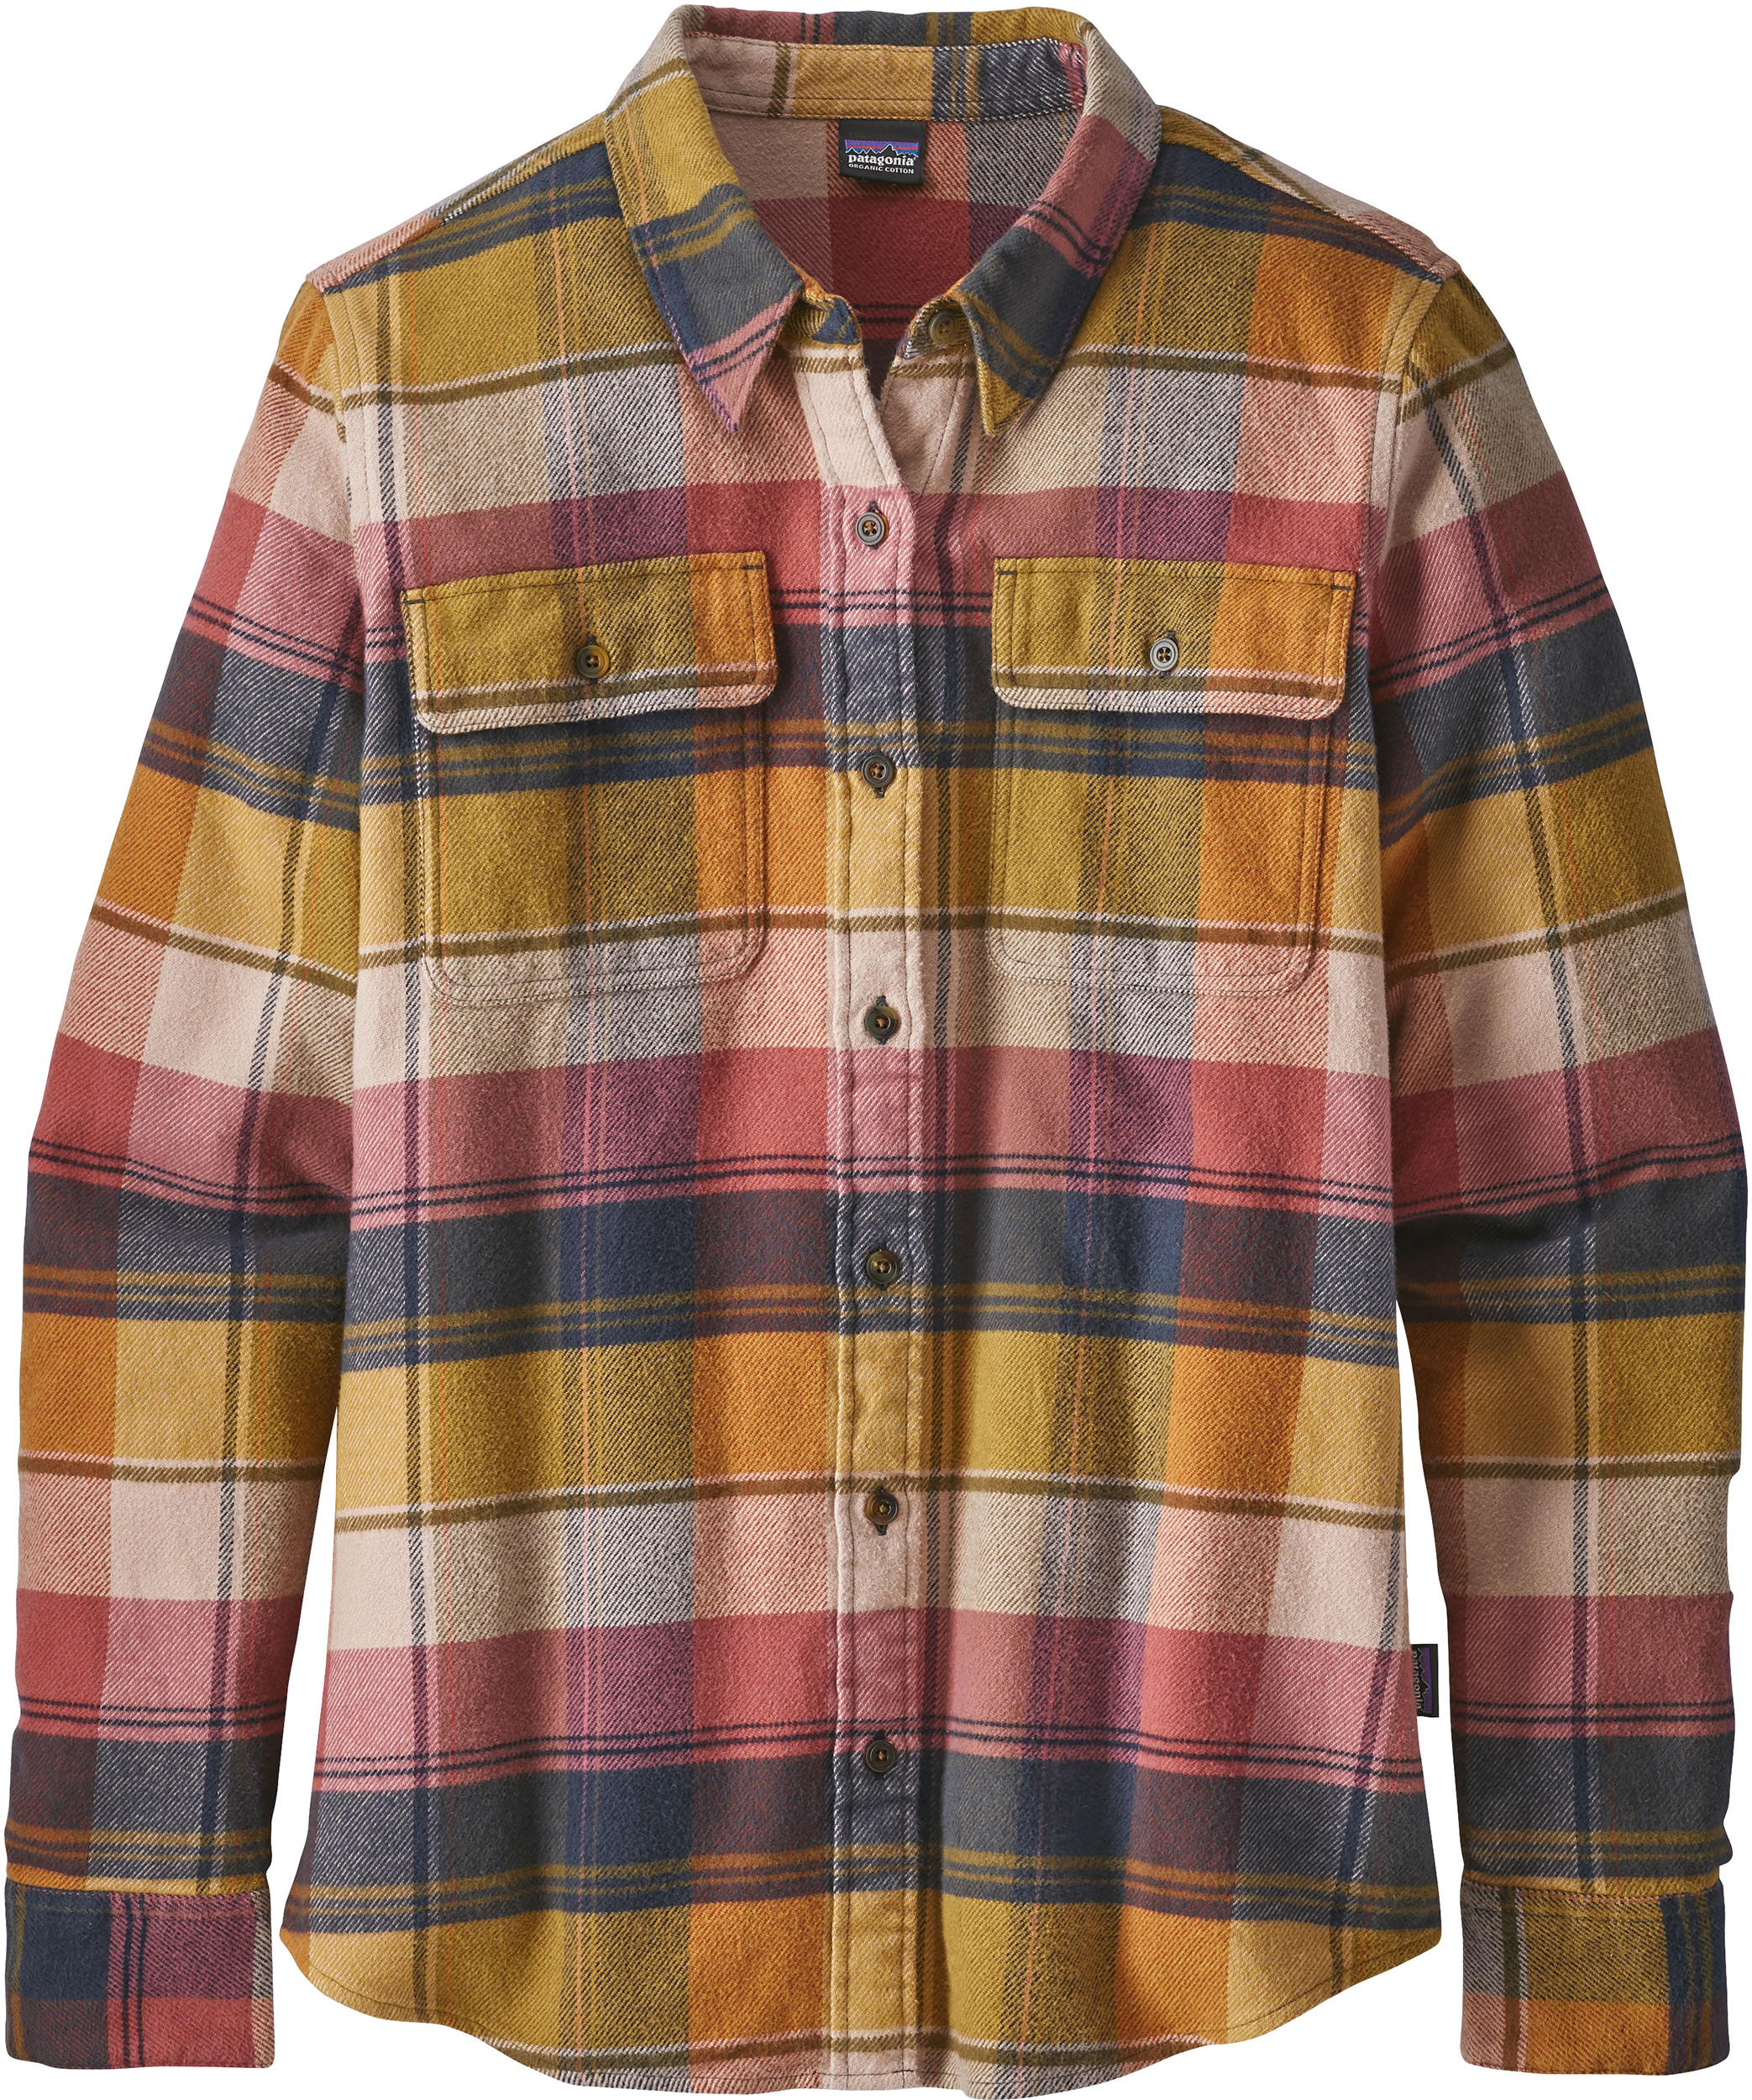 aa8878d1 Patagonia Fjord Flannel Long Sleeve Shirt - Women's | MEC